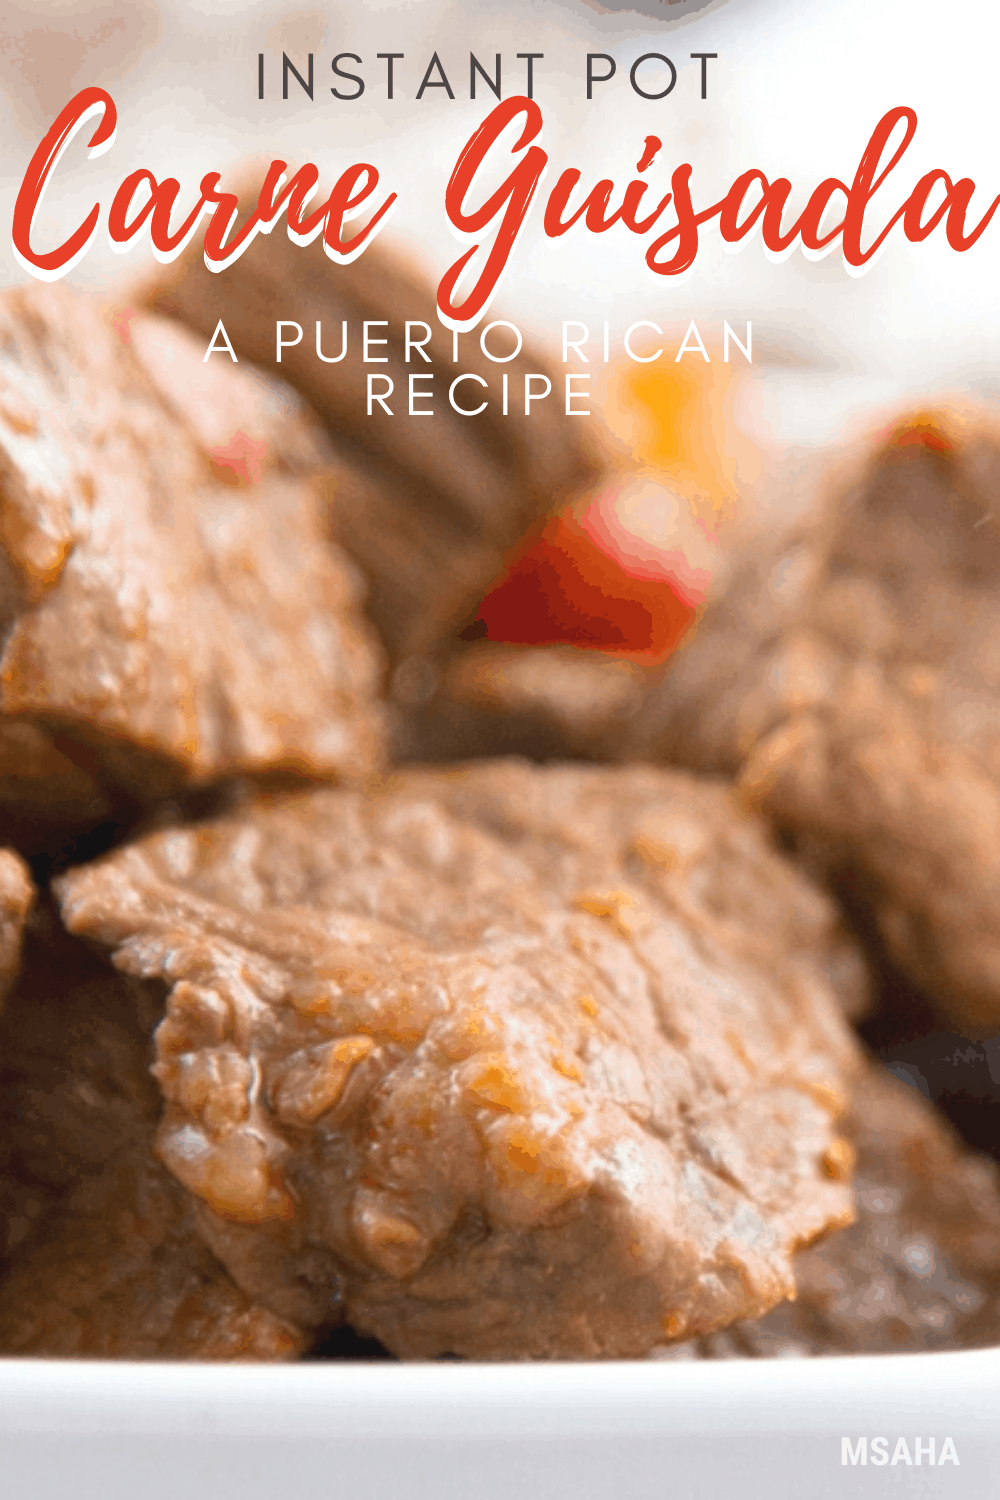 Delicious and flavorful Puerto Rican Carne Guisada or beef stewed made using an Instant Pot. Find out how easy it is to make this authentic dish. #puertoricanrecipe #puertoricanfood #instantpot via @mystayathome